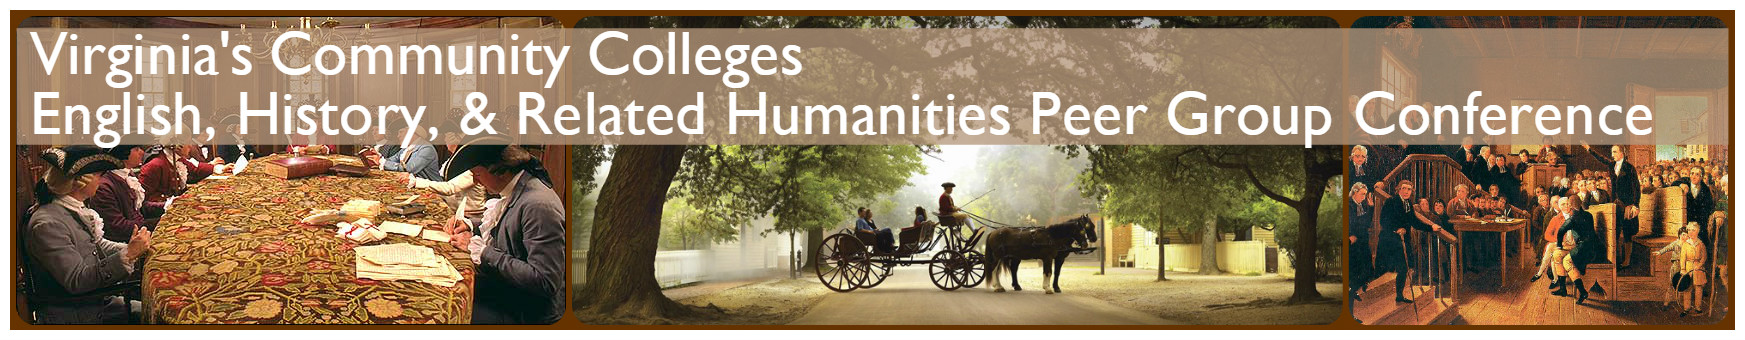 English, History, & Related Humanities Peer Group Conference